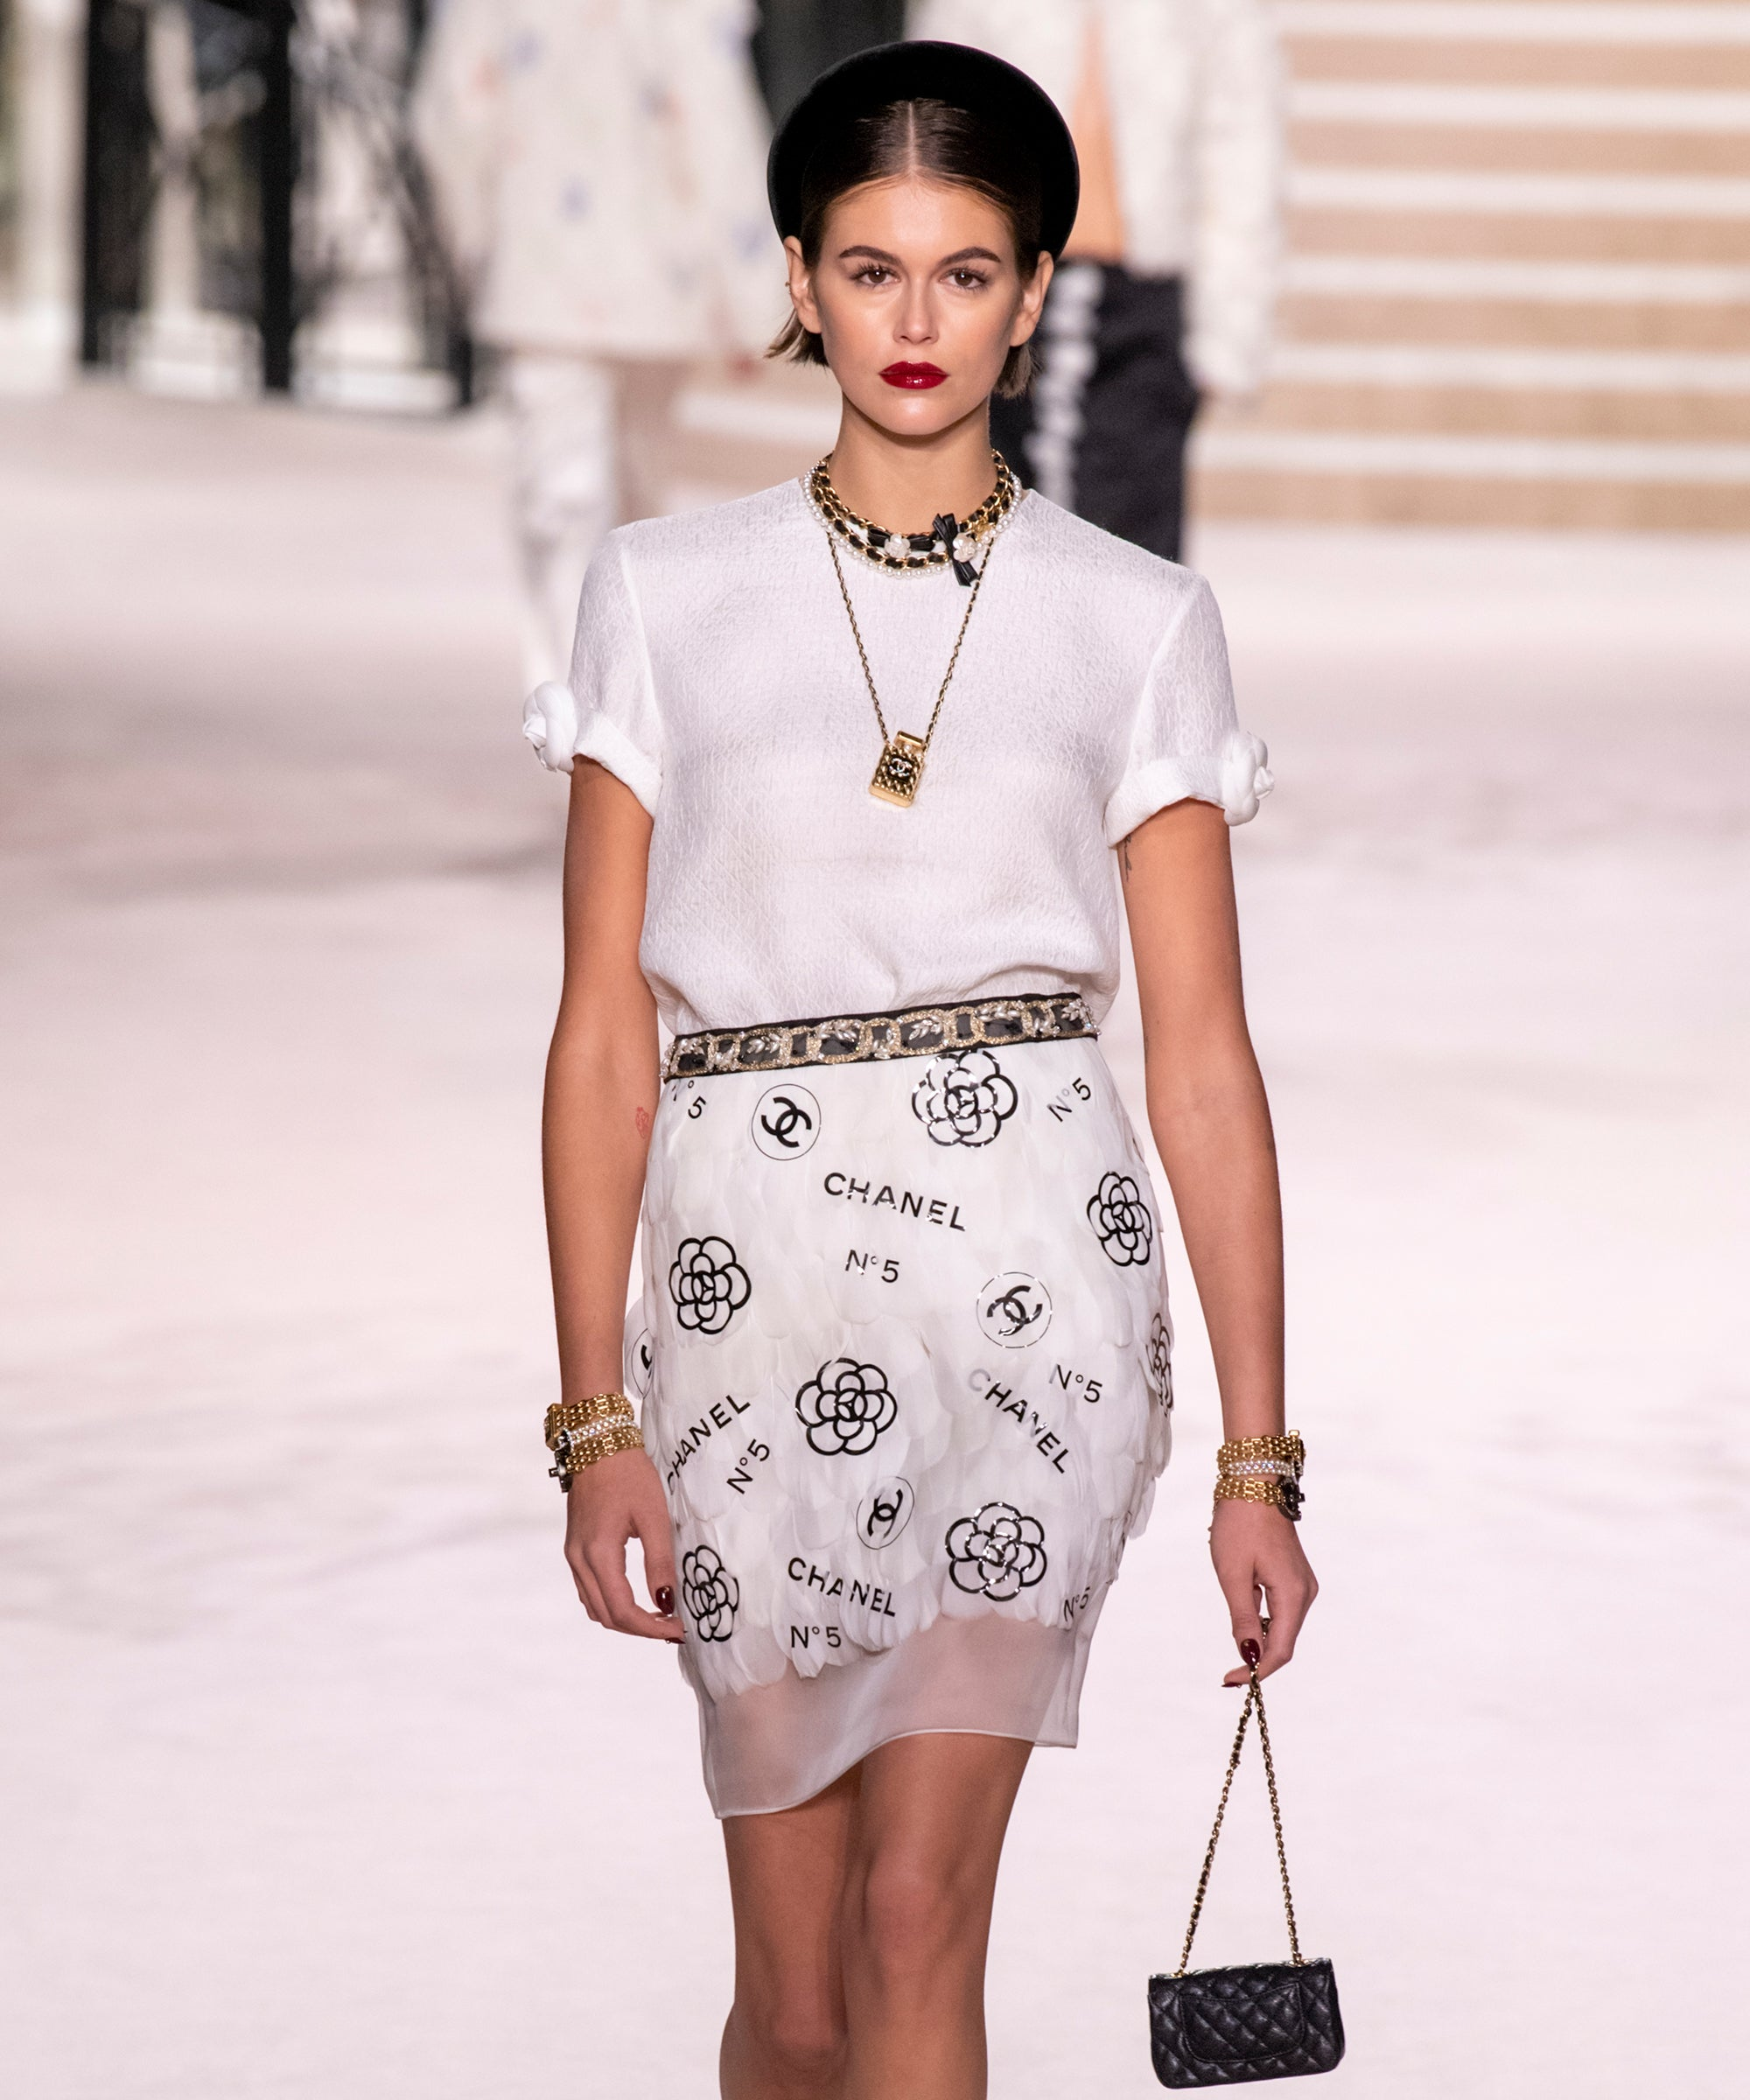 Chanel's Latest Collection Is Millennial-Friendly & Very '90s